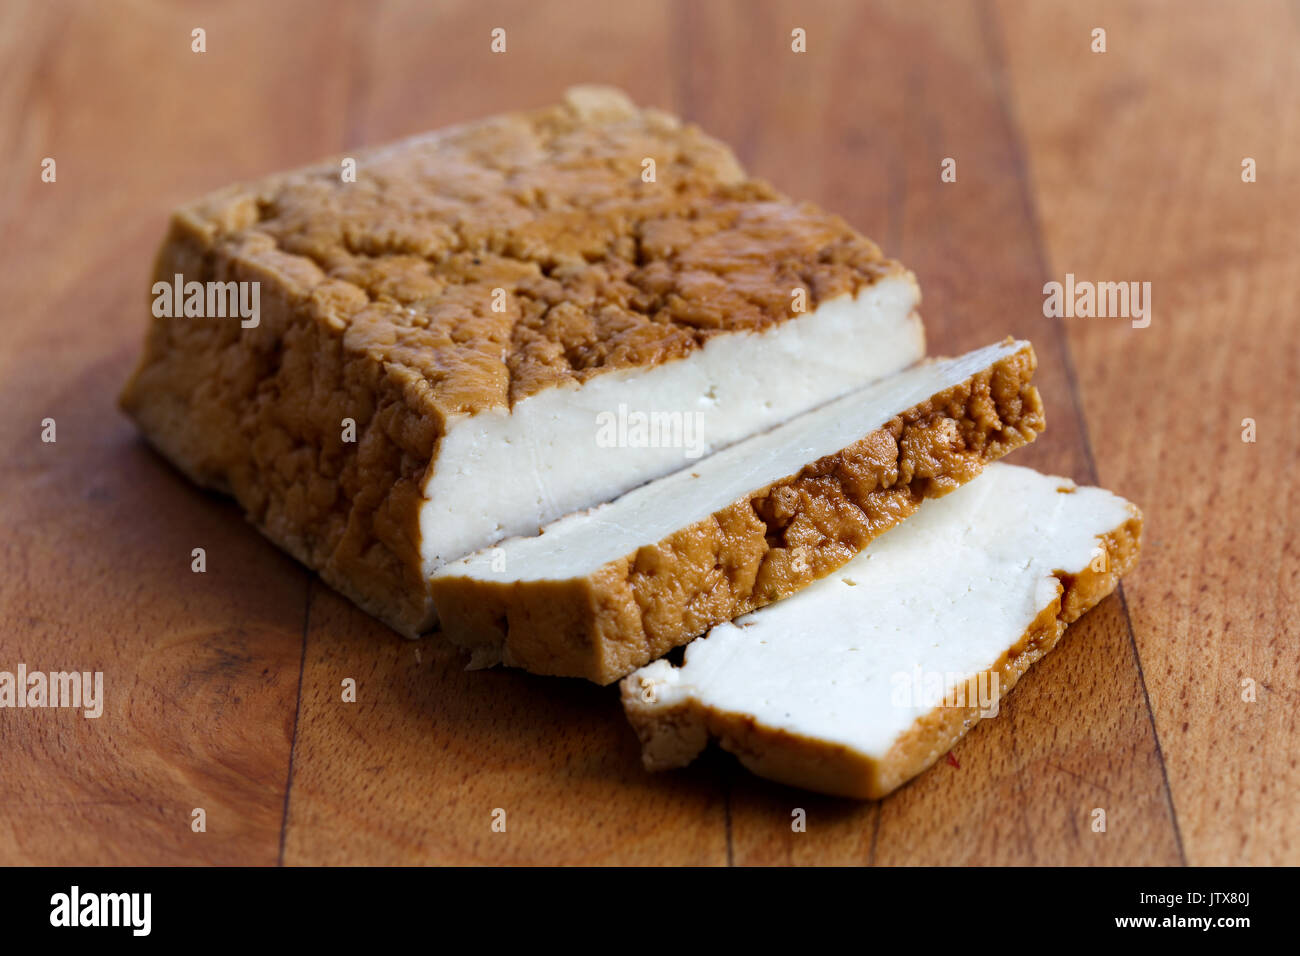 Block of smoked tofu and two tofu slices on wooden chopping board. - Stock Image